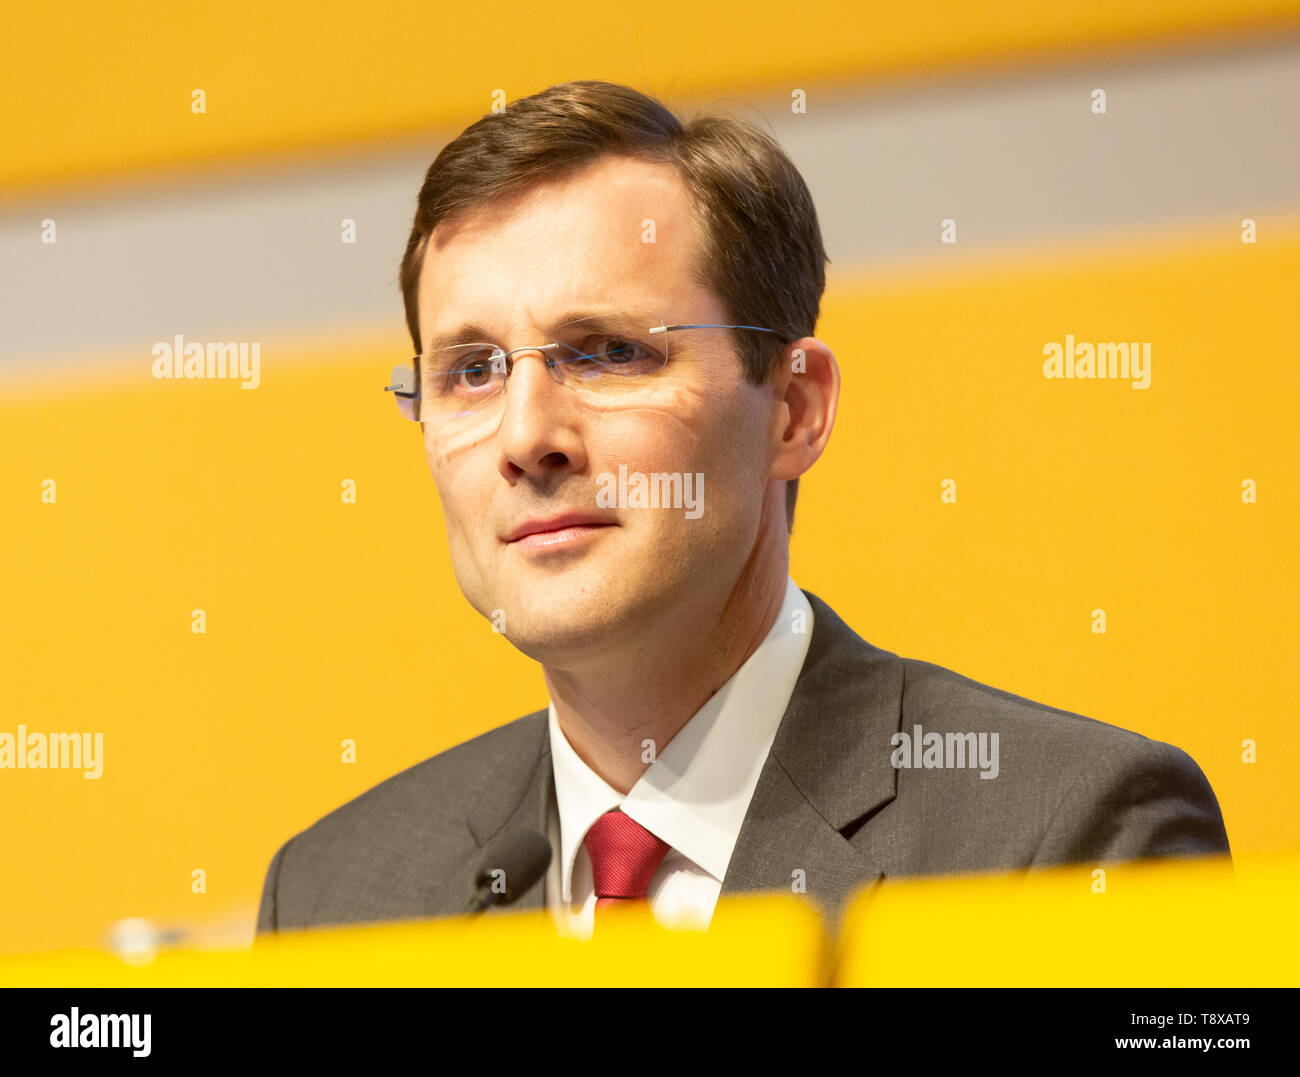 Bonn, Deutschland. 15th May, 2019. Germany, Bonn, May 5 2019, Deutsche Post DHL Annual General Meeting: Member of the executive board Tobias Meyer. Credit: Juergen Schwarz/Alamy Live News - Stock Image